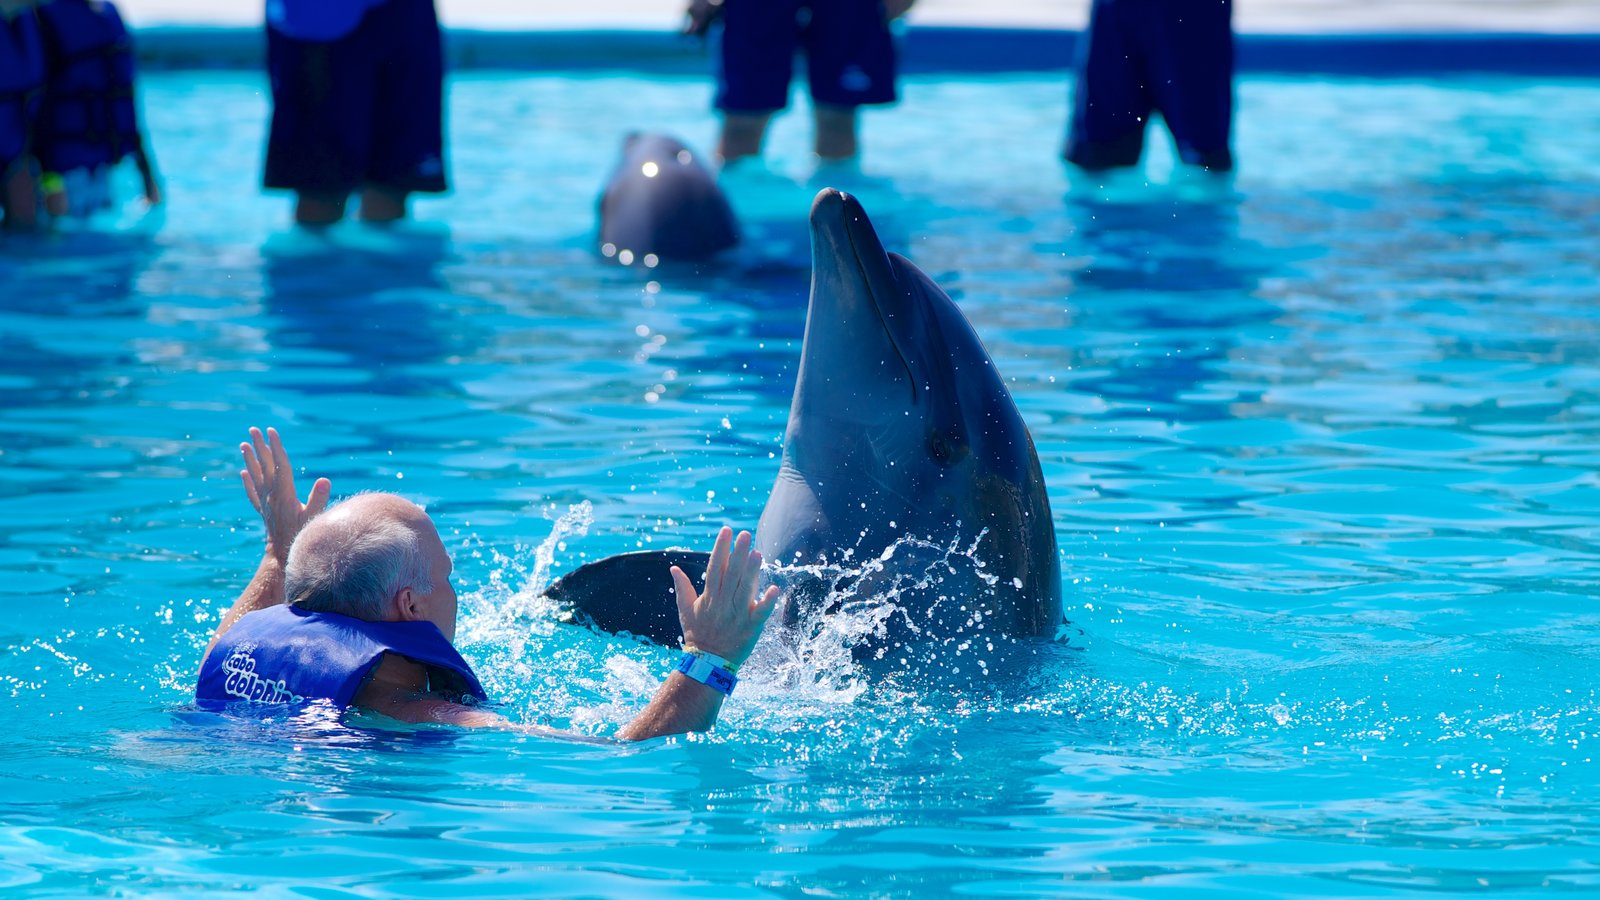 Cabo Dolphins showing a water park, swimming and marine life